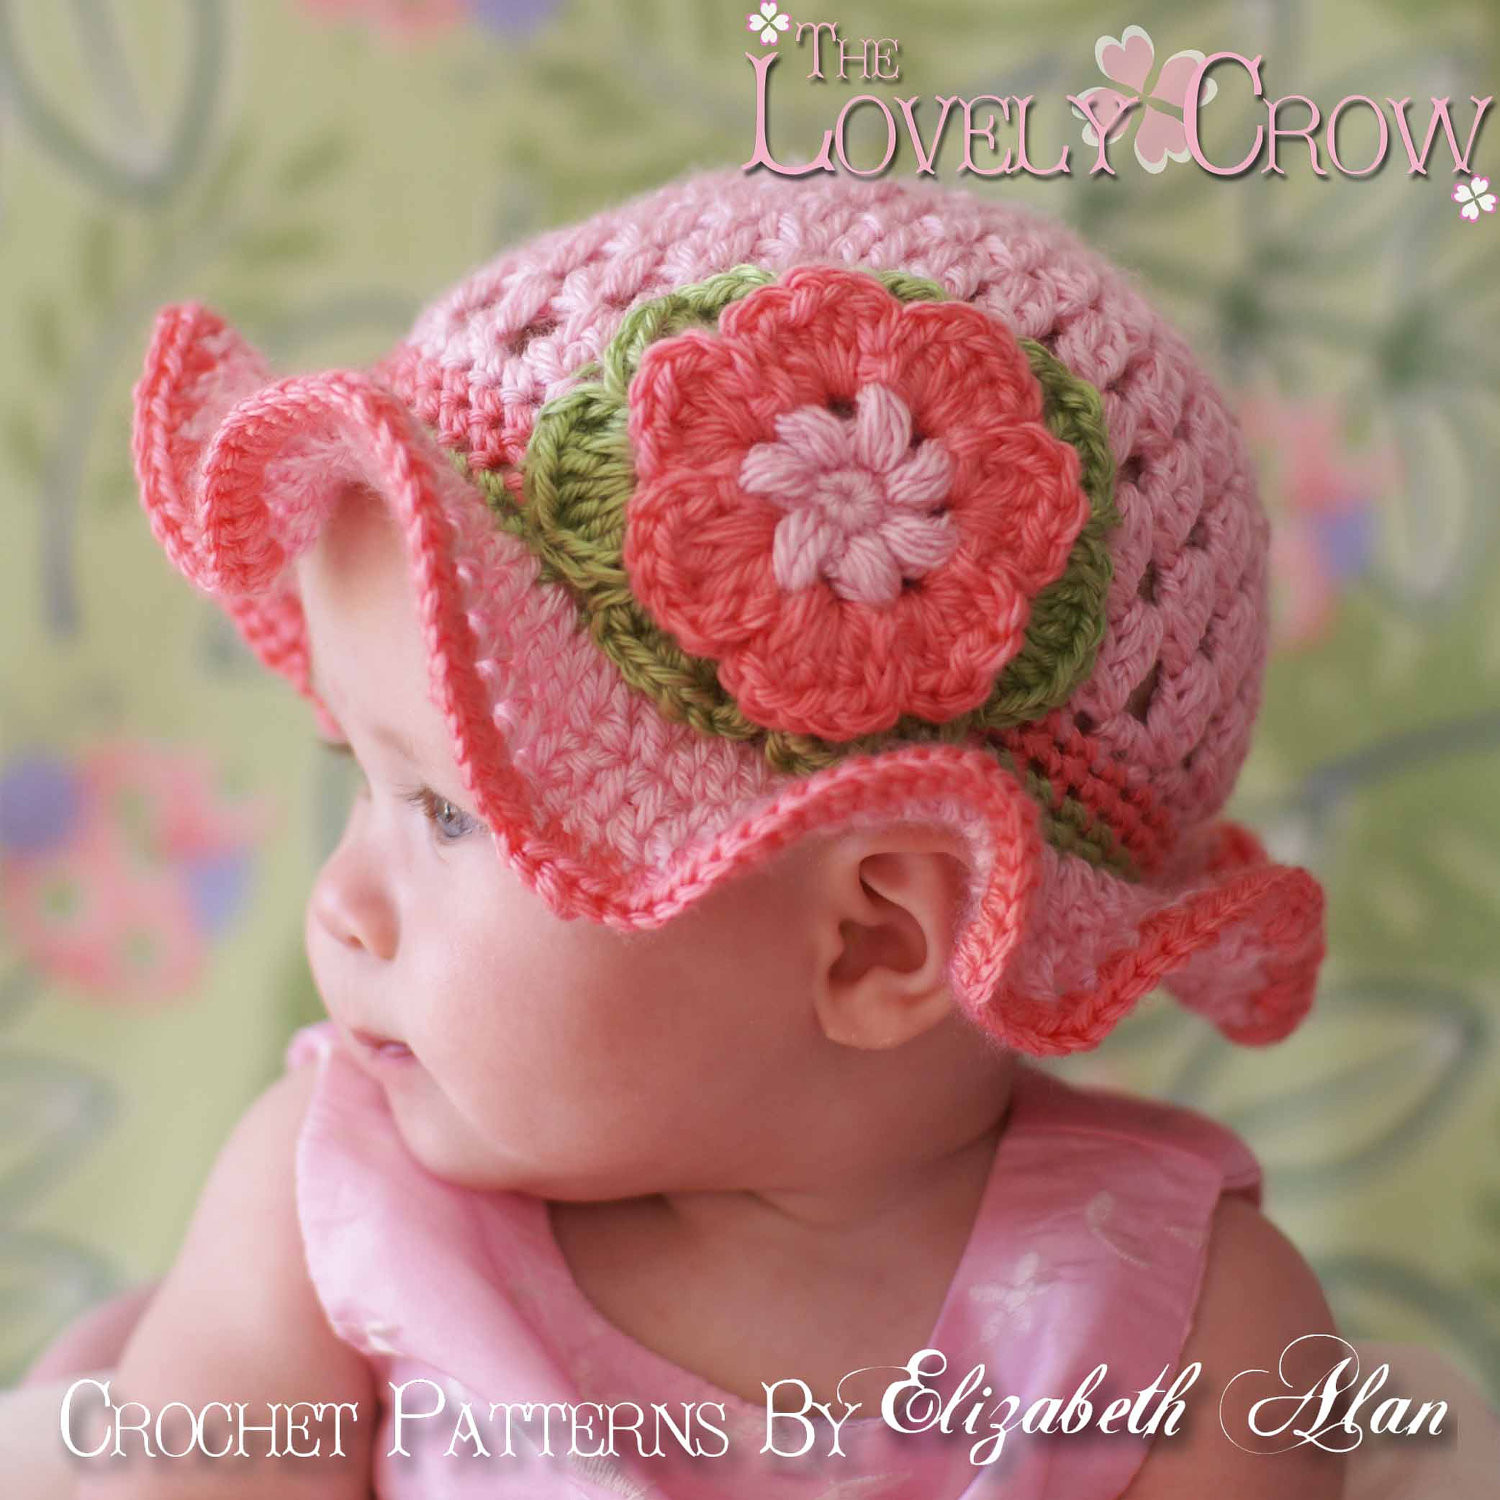 Crochet Girl Hat New Crochet Baby Girl Hats Free Patterns Of Superb 47 Pics Crochet Girl Hat